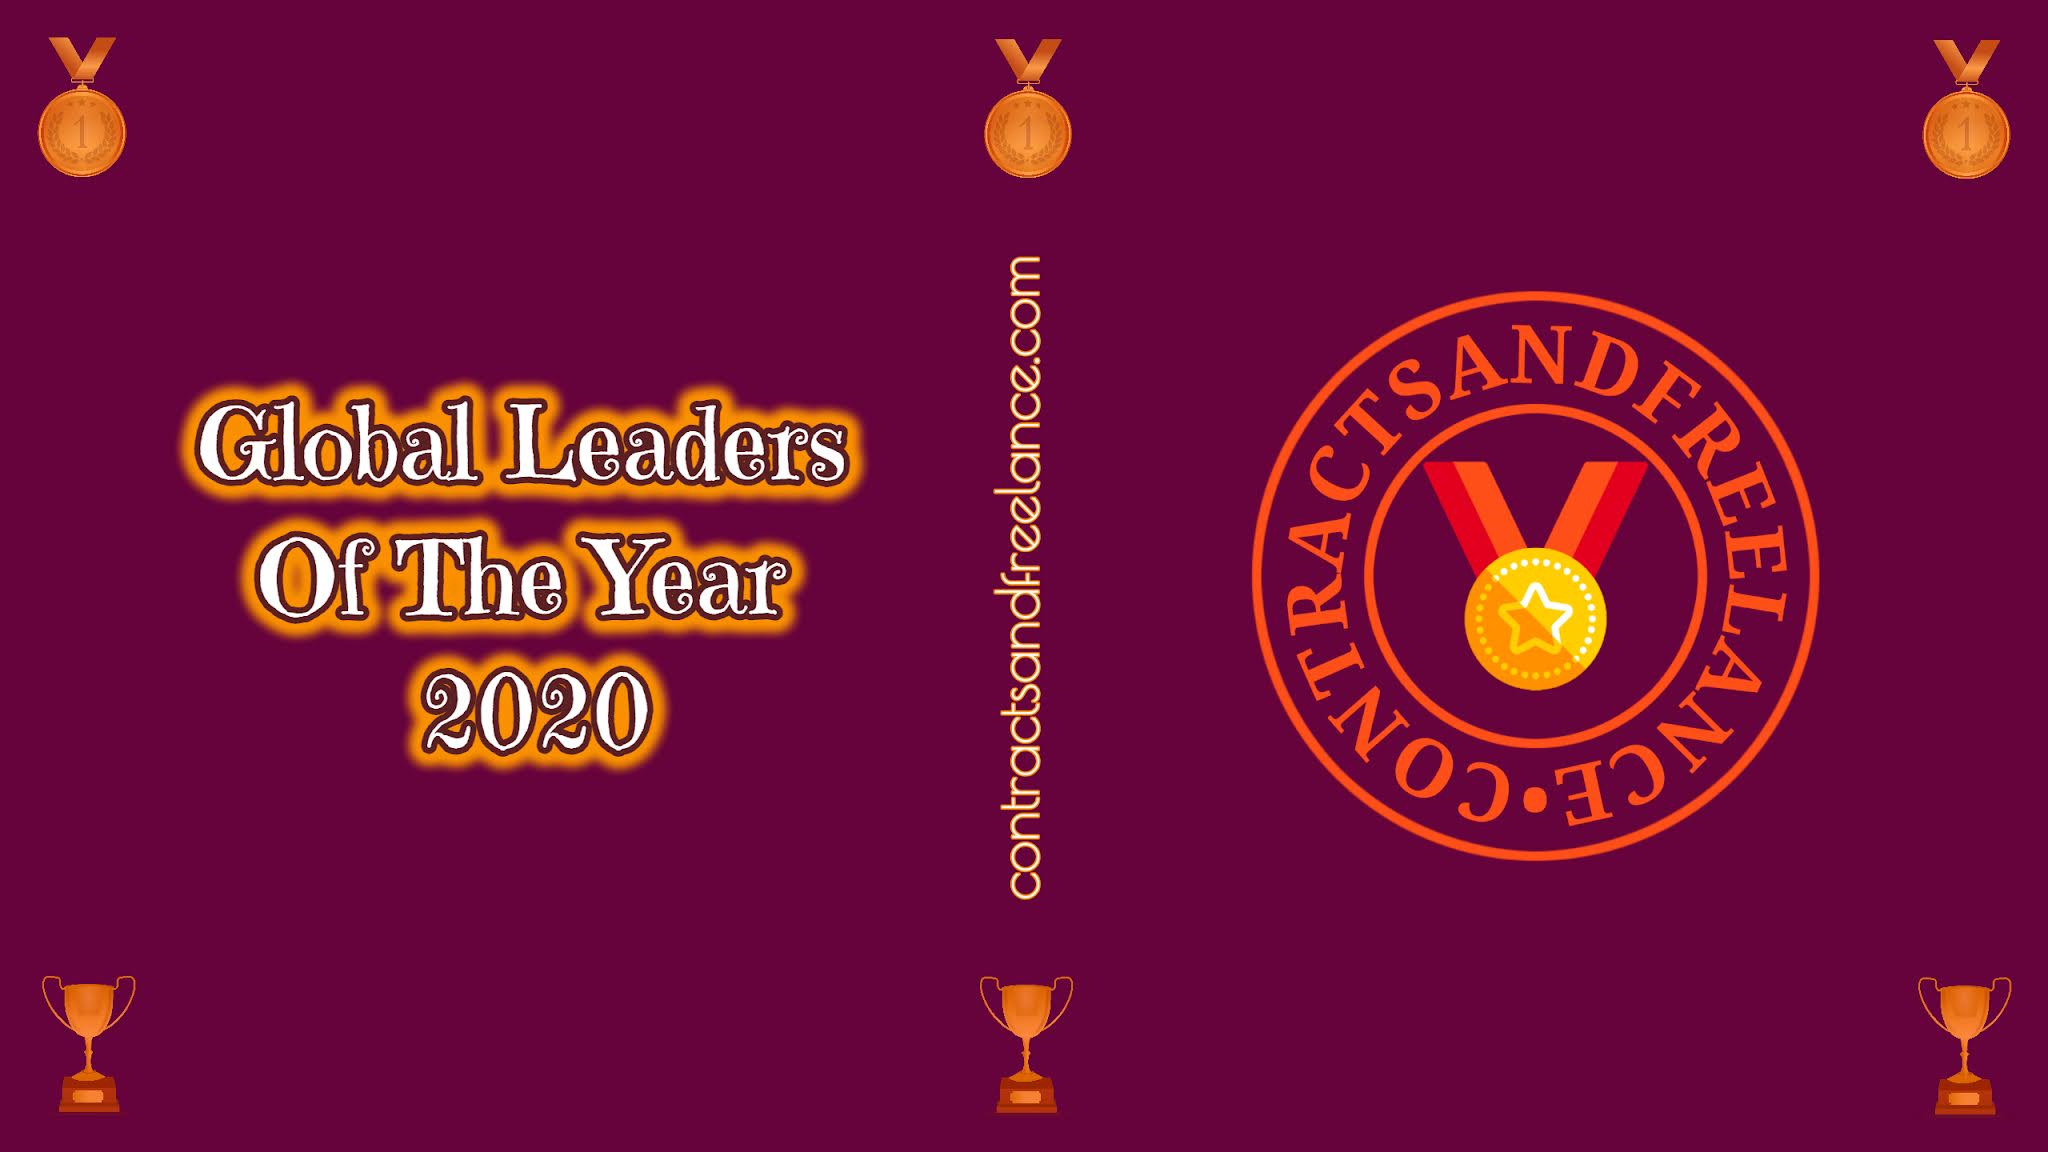 Global Leaders Of The Year 2020 | List Of The Most Influential People On LinkedIn